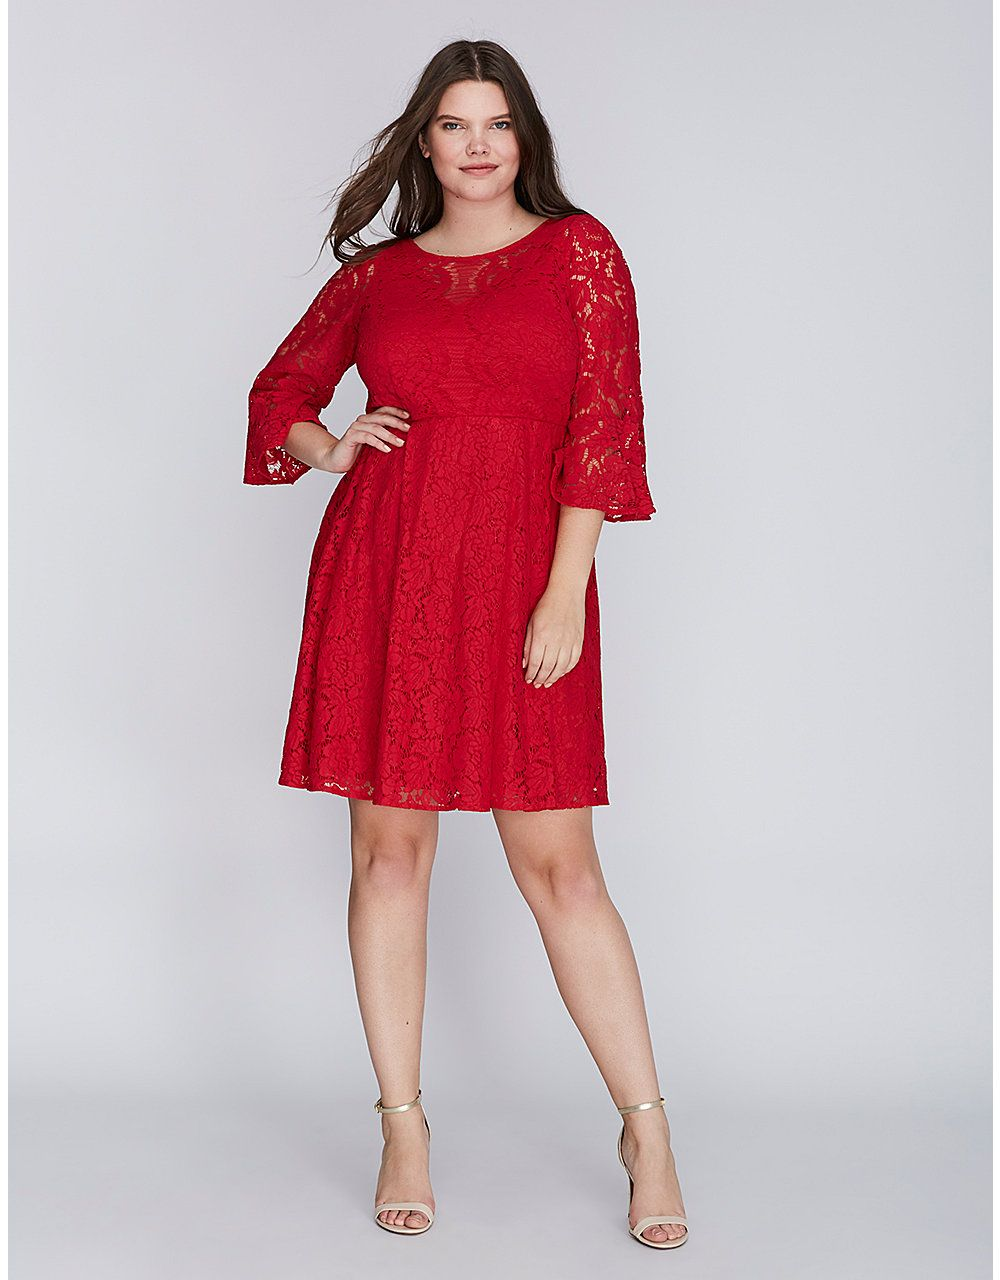 Lace Fit & Flare Dress with Flounce Sleeves | Lane Bryant | dress ...